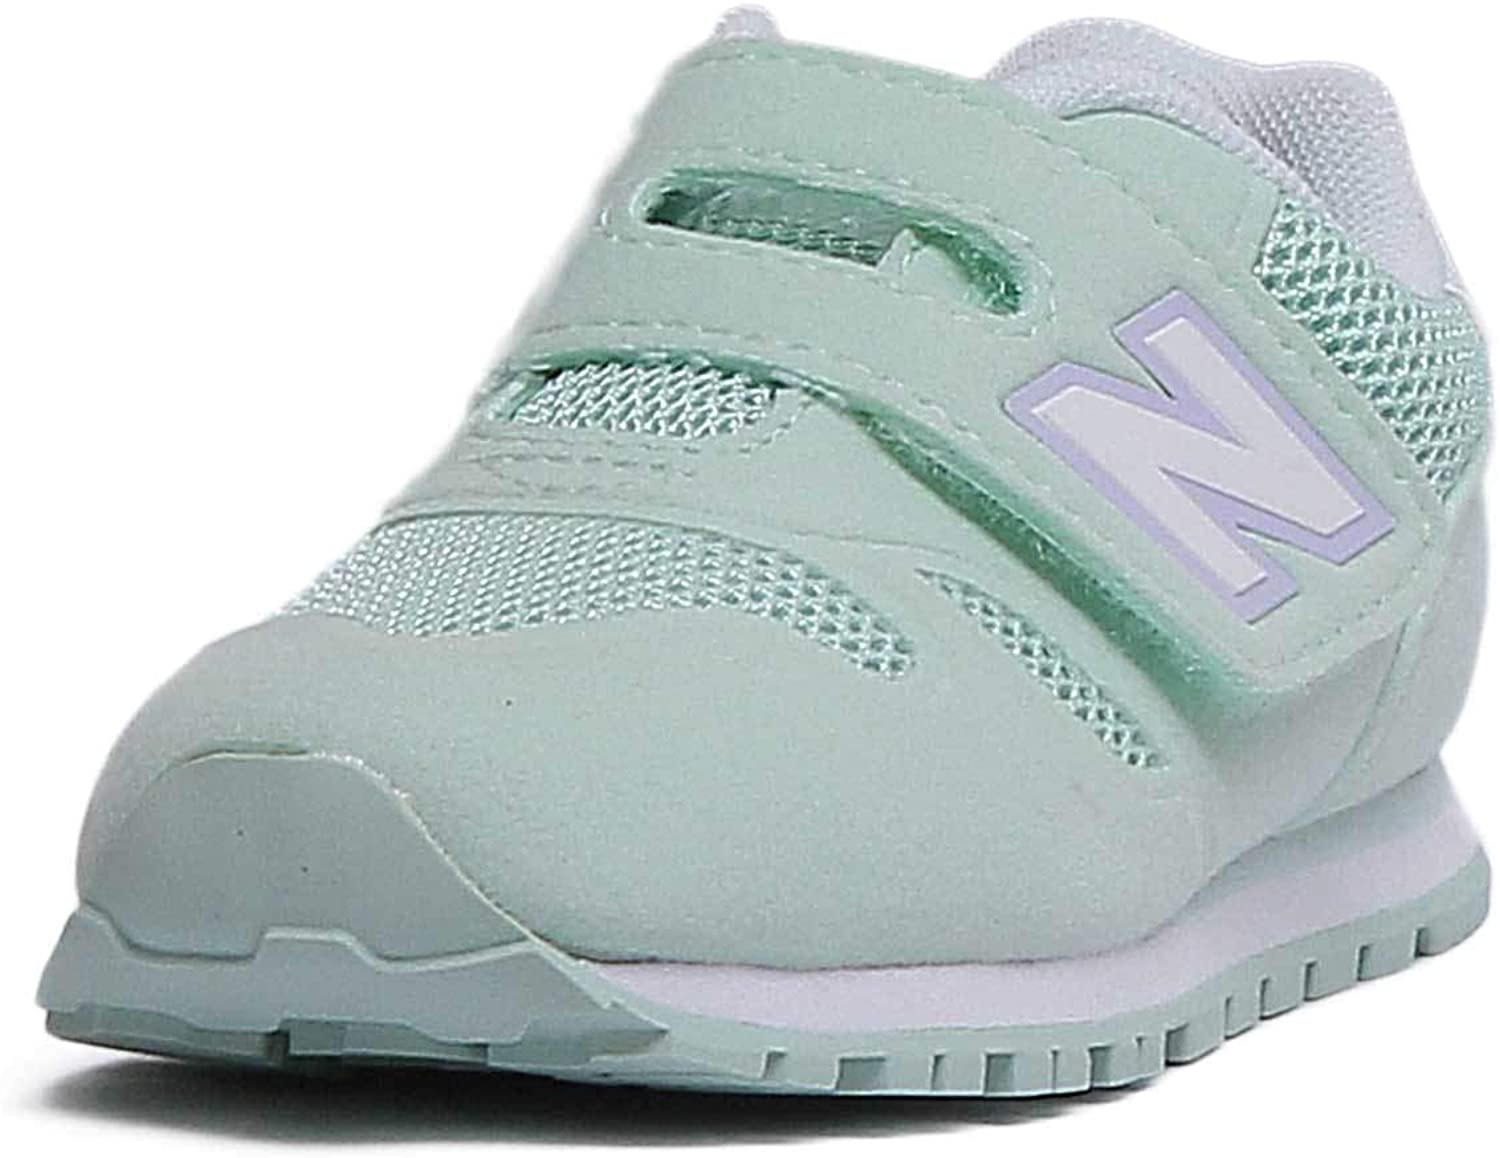 New Balance 373 Trainers in Green